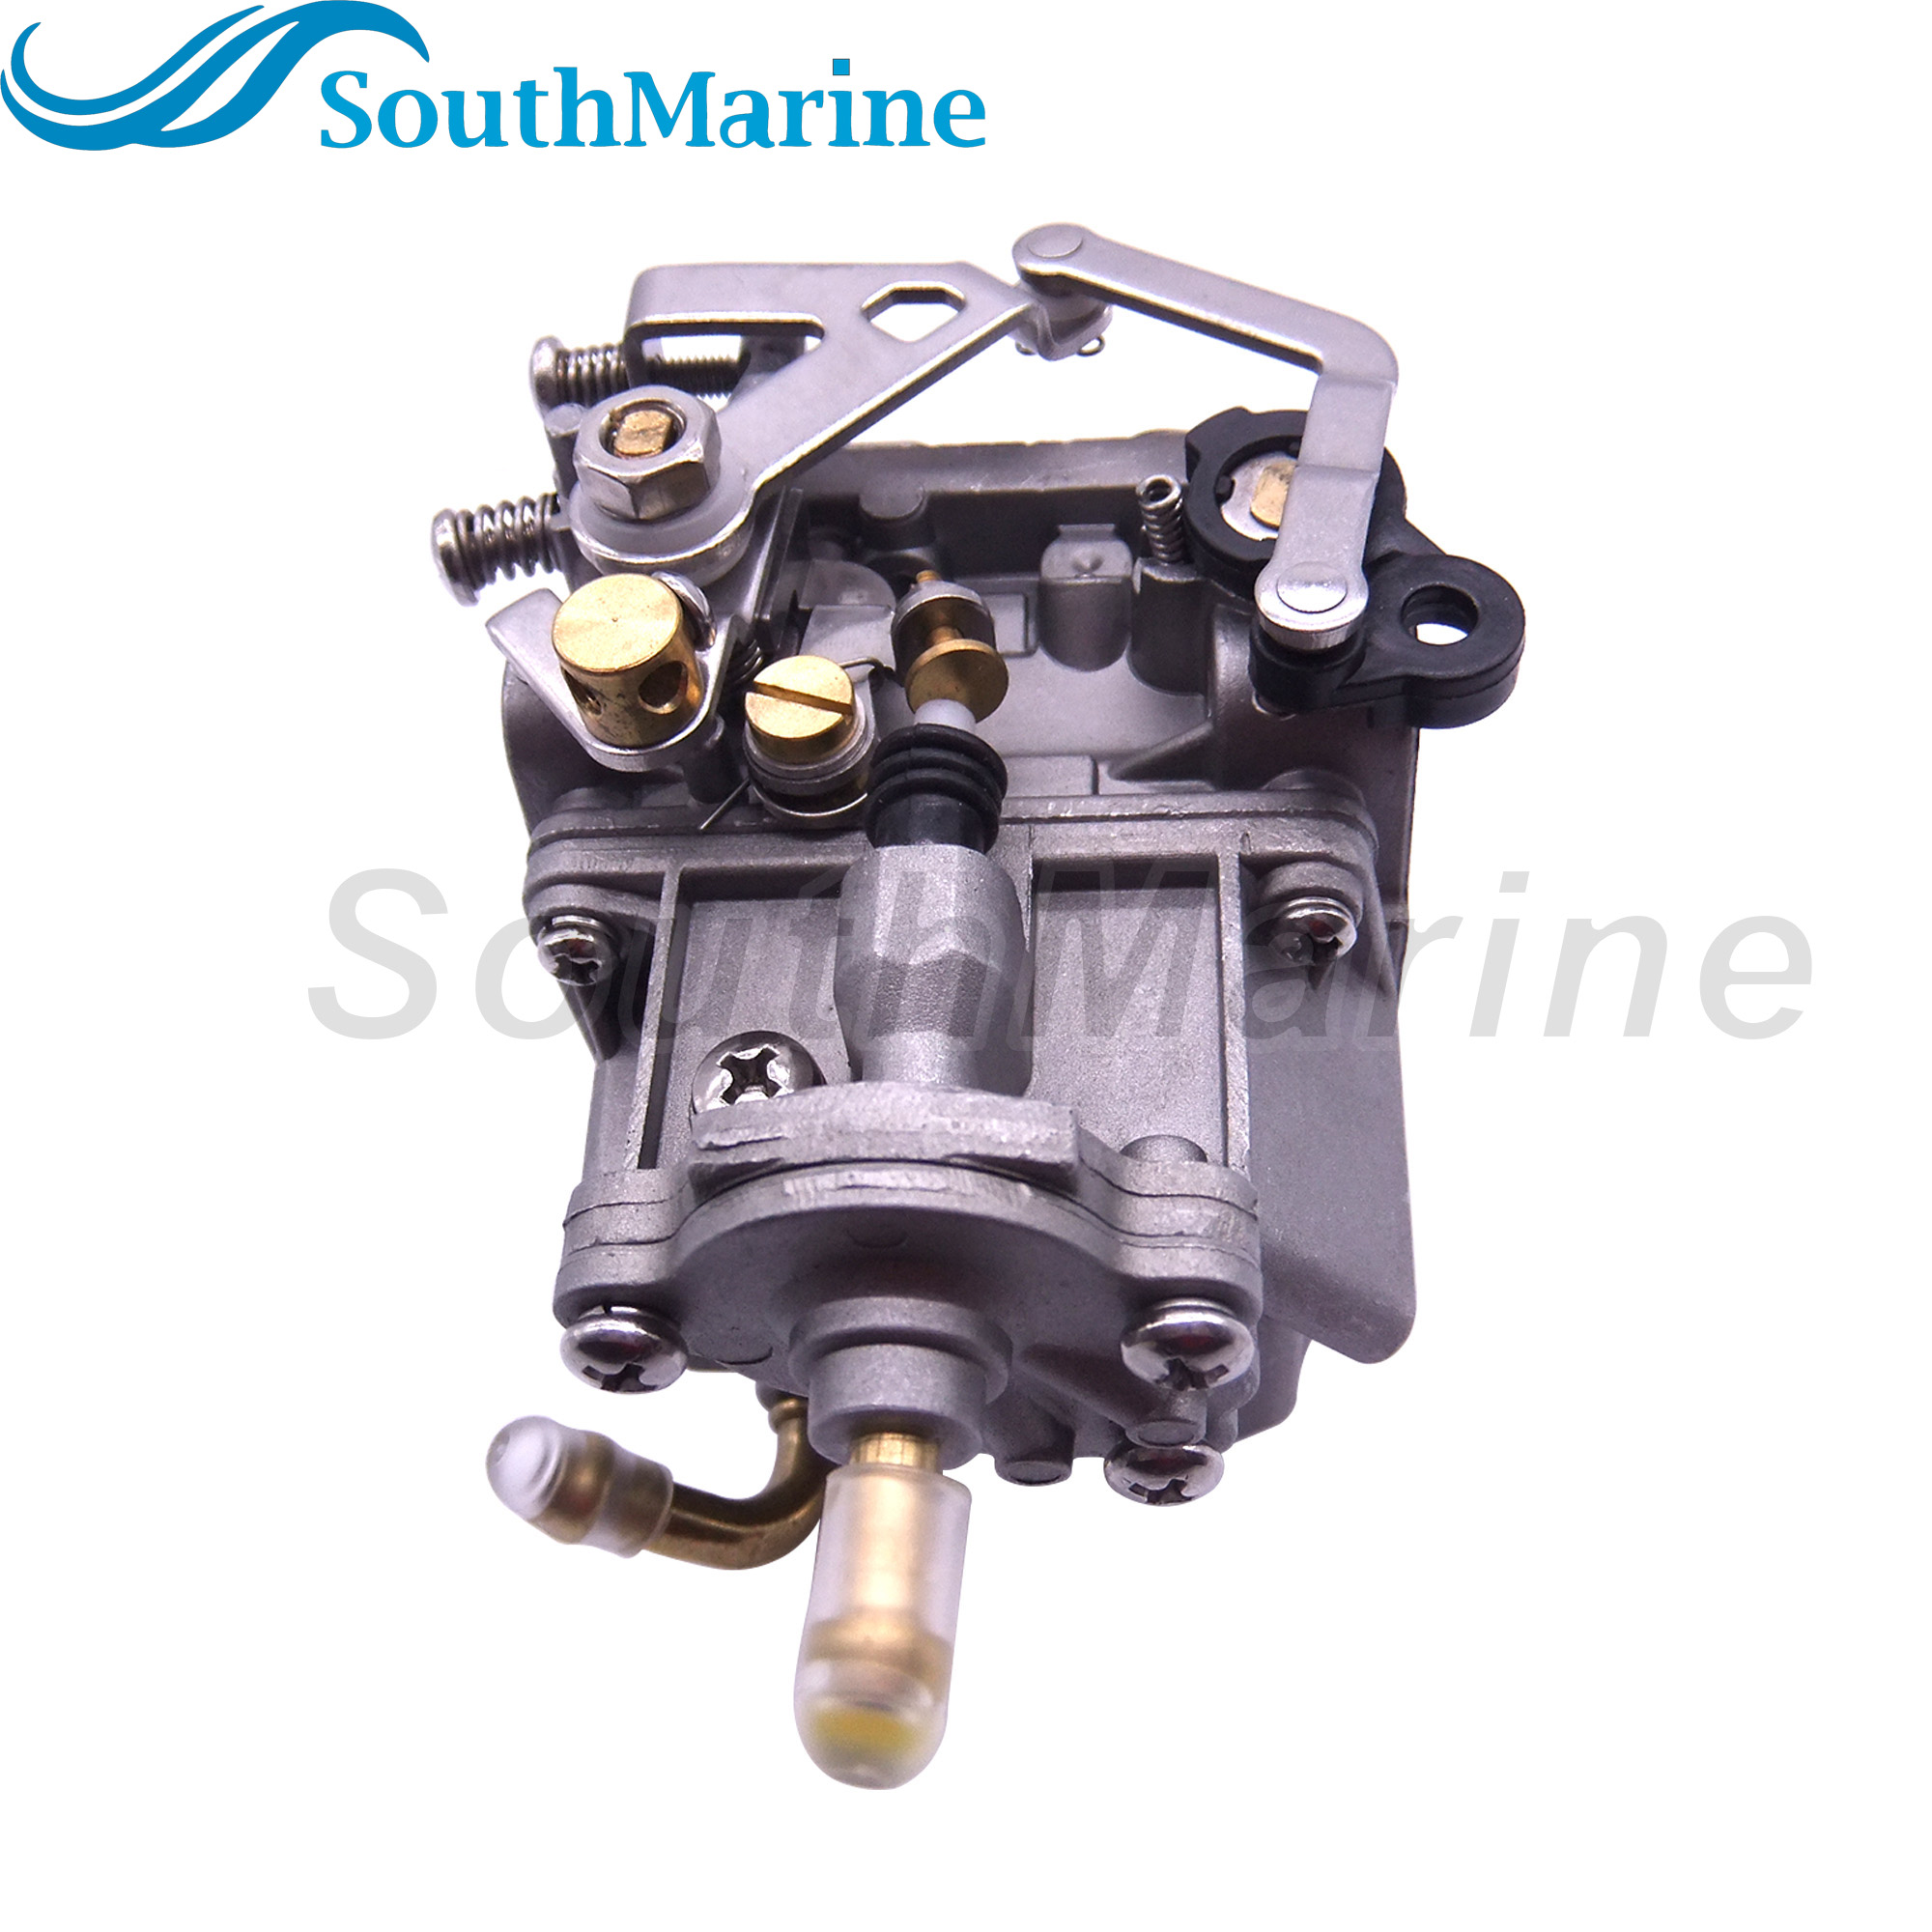 8M0129551 8M0109534 853720T16 853720T20 Carburetor Assembly For Mercury Mariner Outboard Engine 4-stroke 15HP 20HP, T